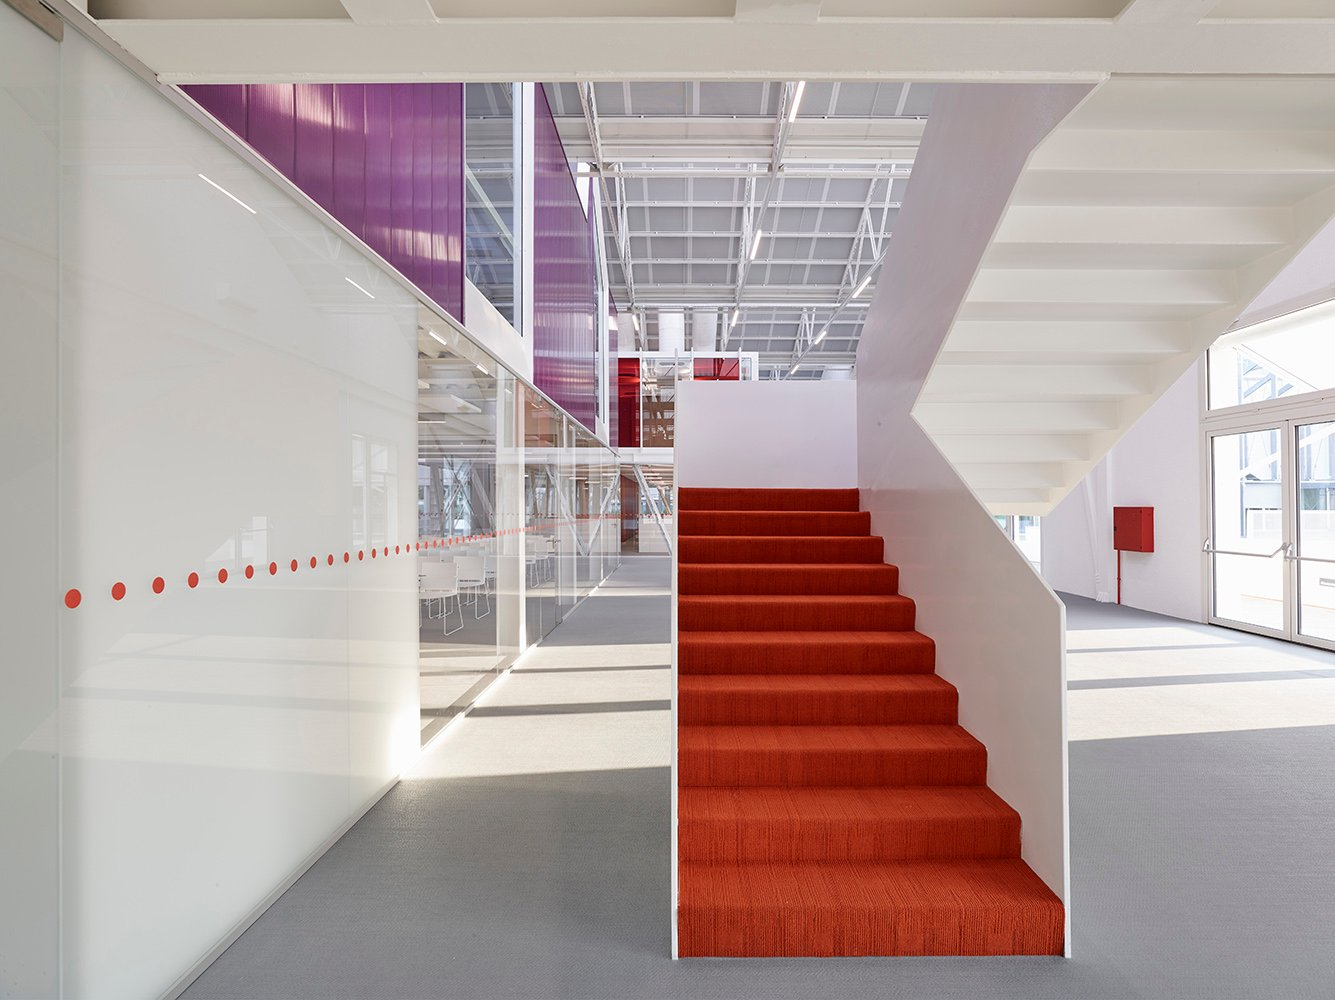 The tale of the stair that connects common areas to the classrooms